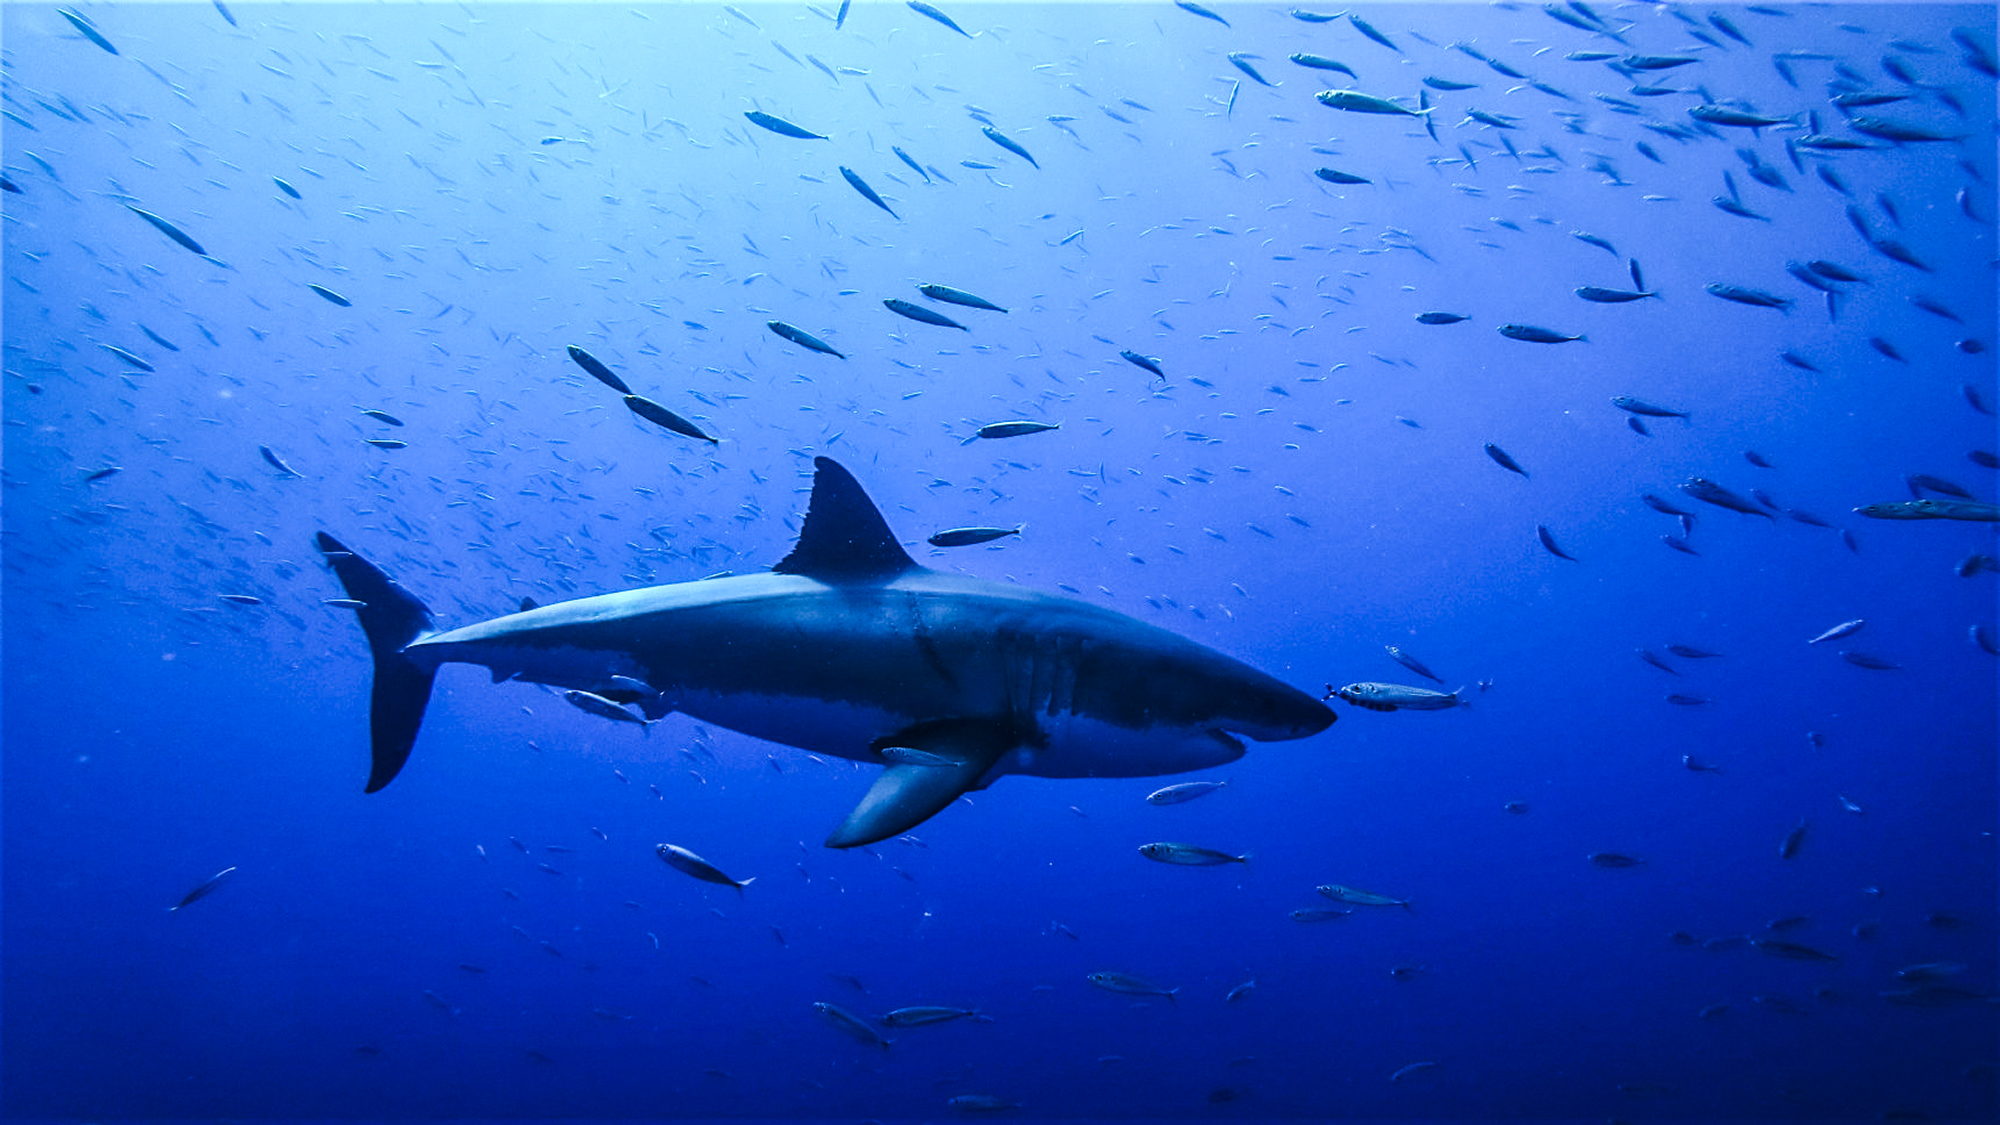 A great white swims through mackerel in the blue. Photo by DM Jessie